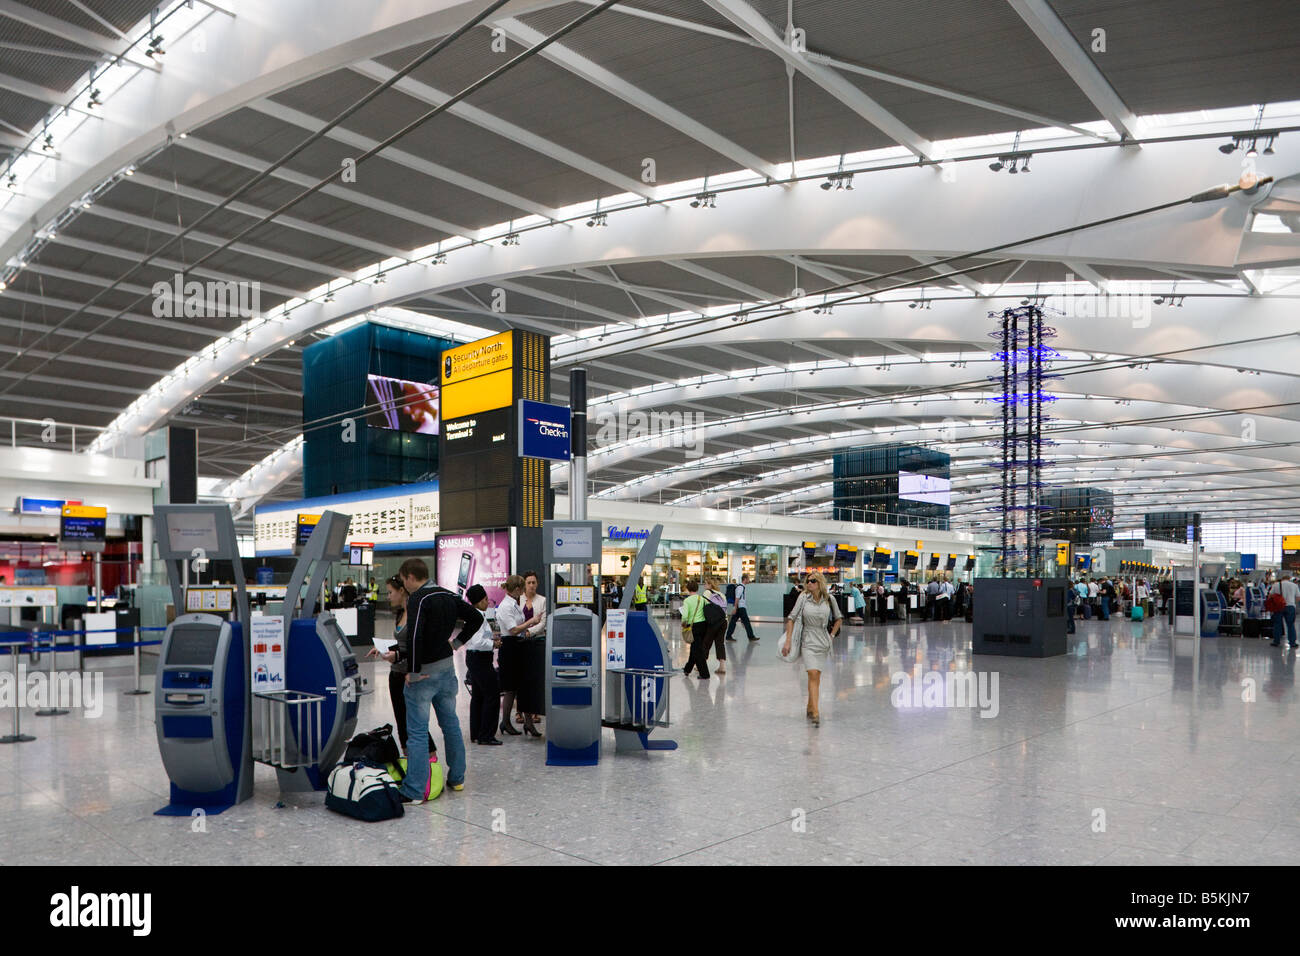 self check in, departure level, Terminal 5, Heathrow, London, England - Stock Image